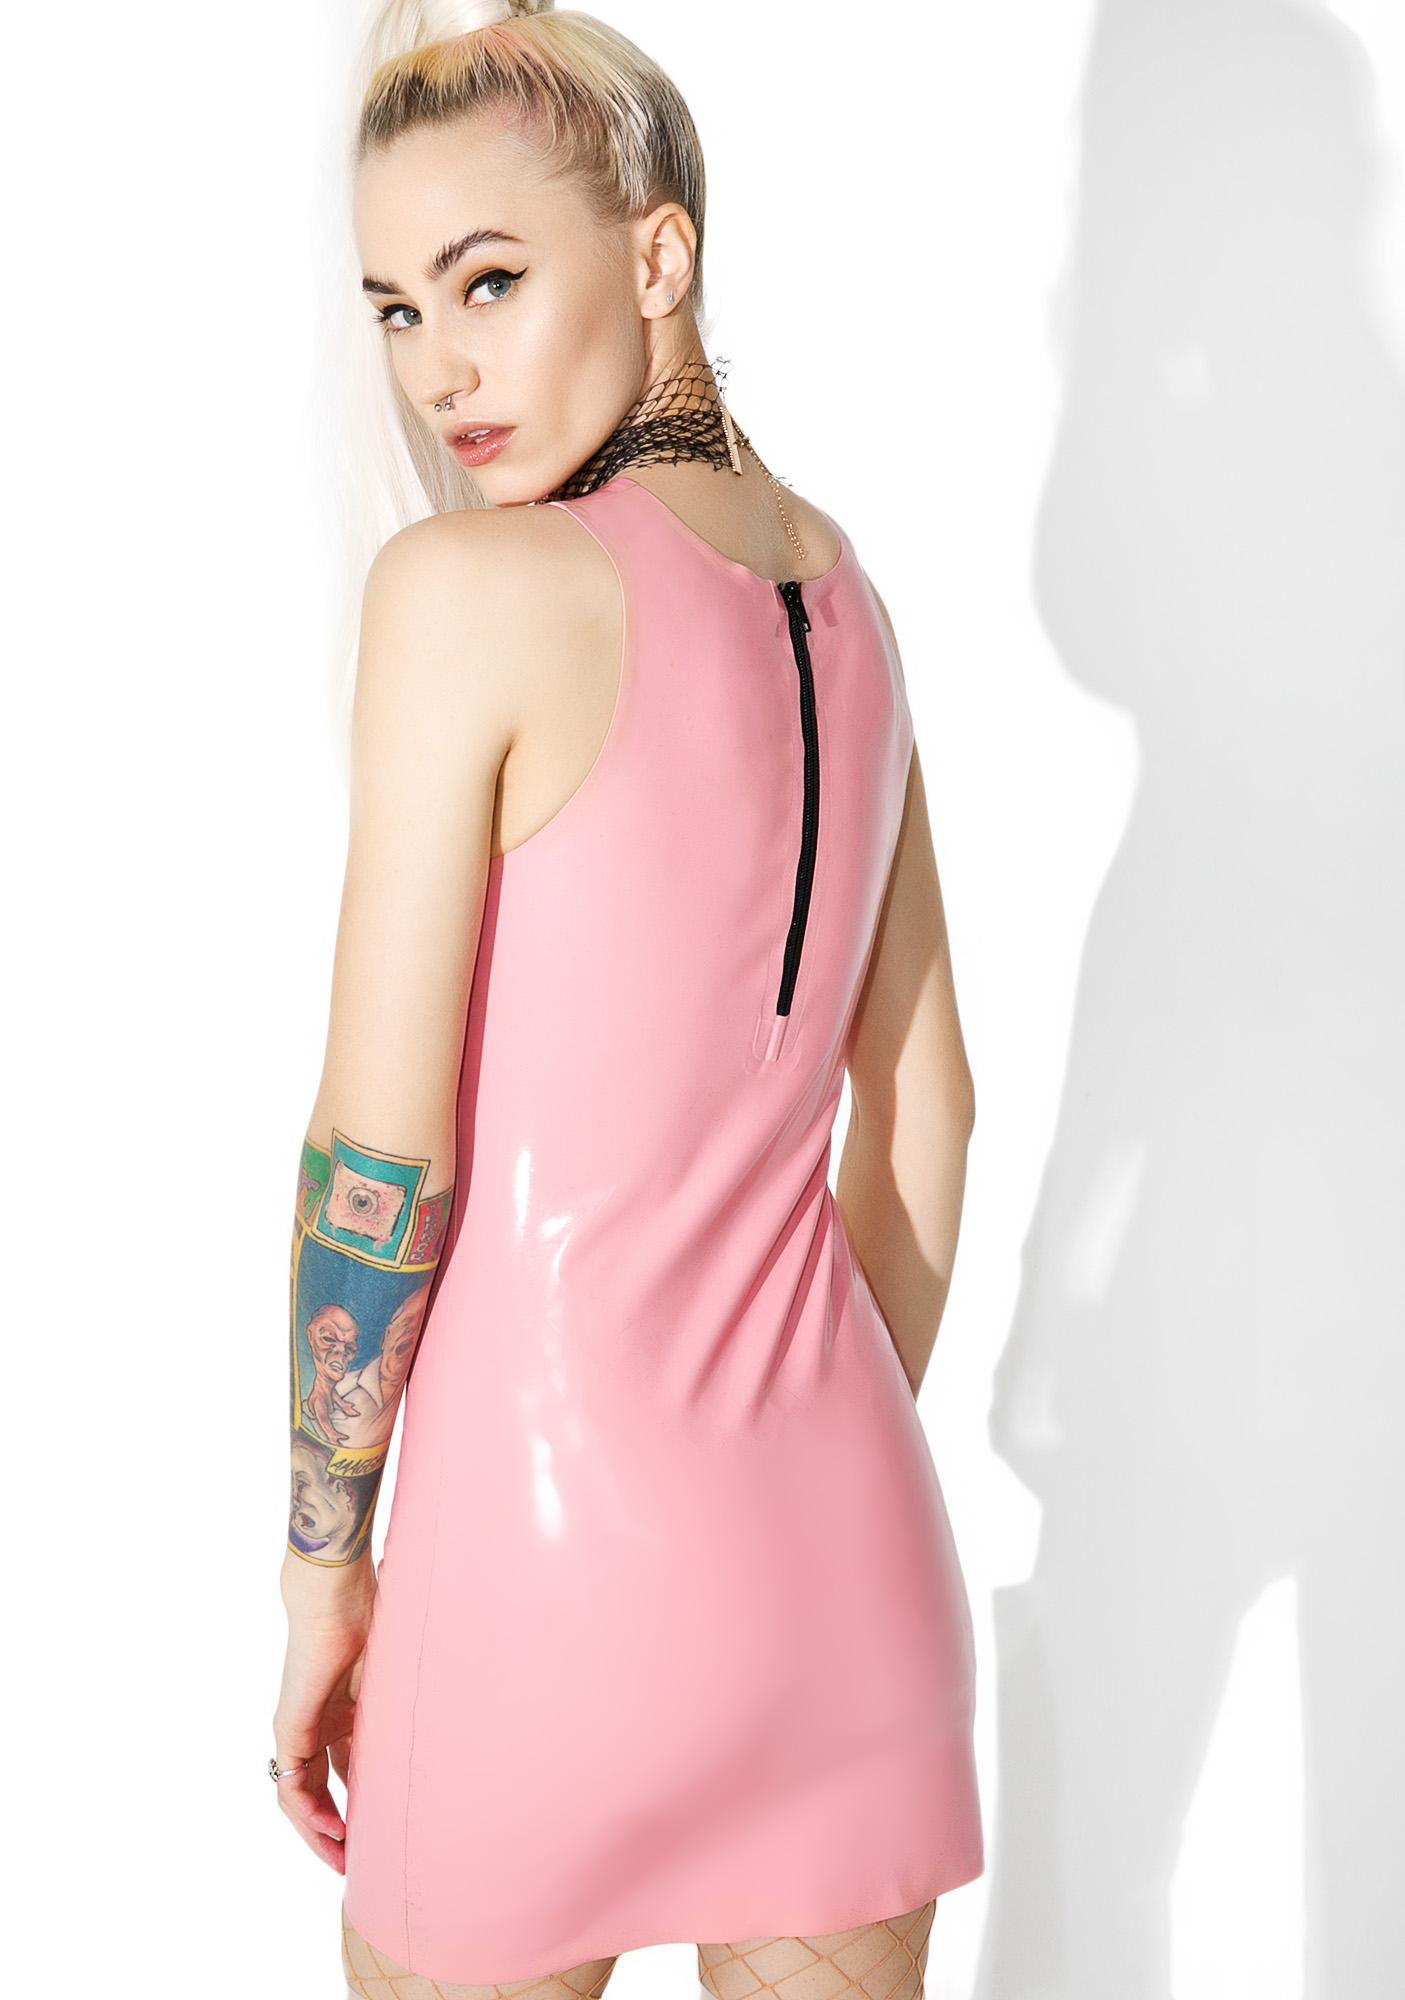 Meat Clothing Tank Vest Dress